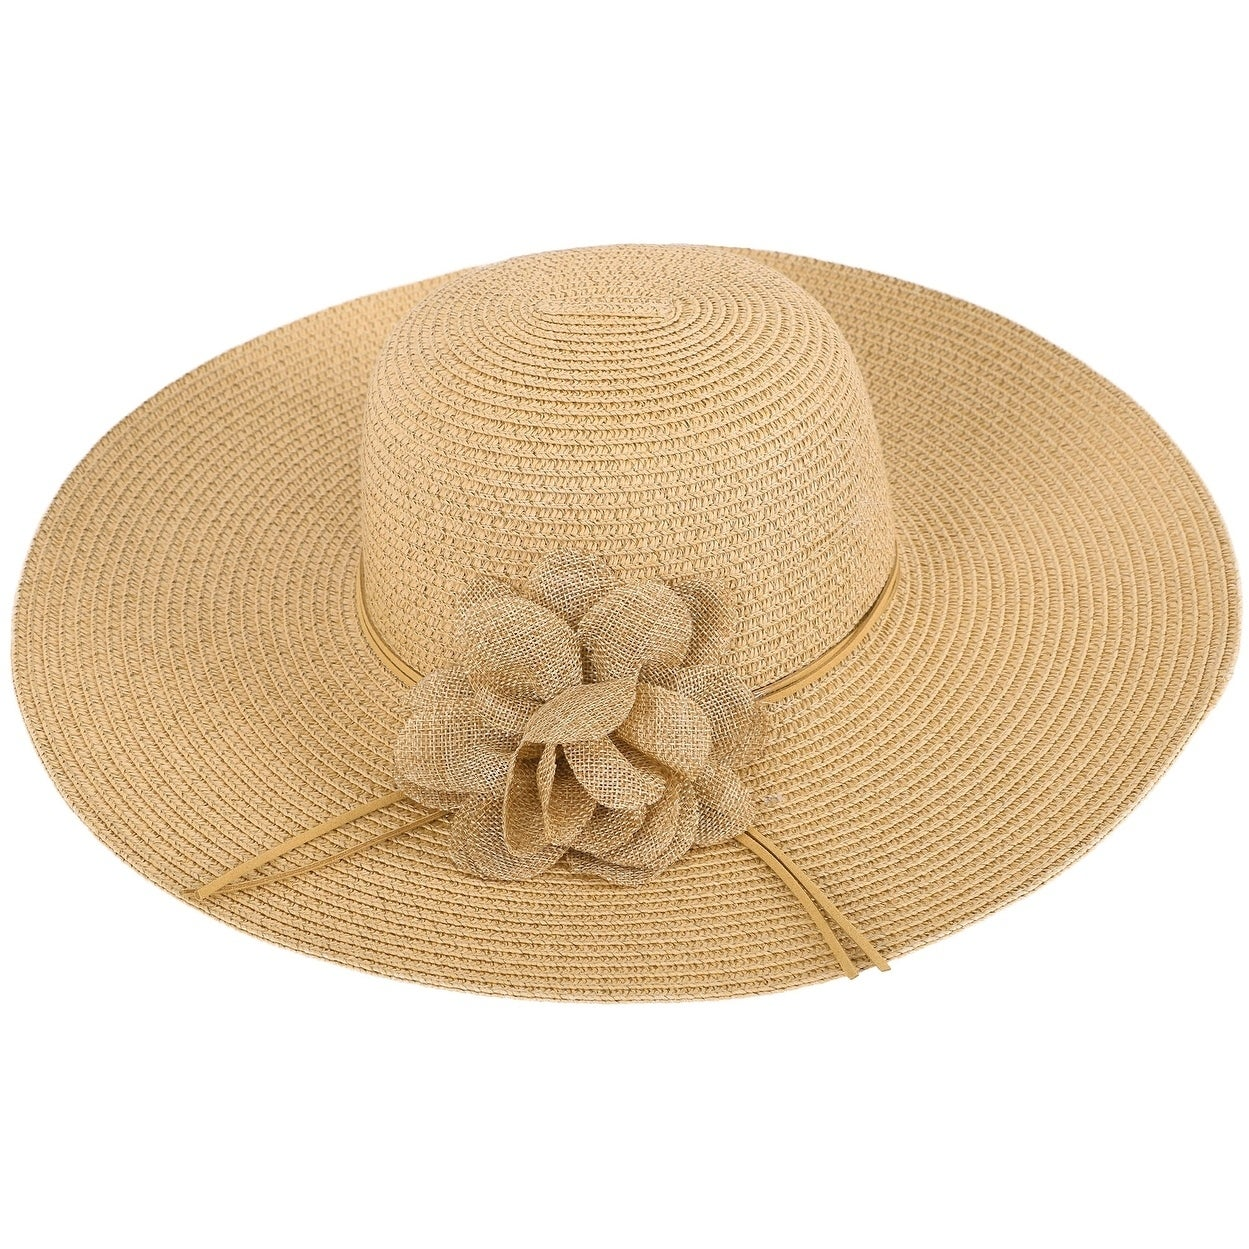 eb64164f2a3 Women s Summer Wide Brim Straw Sun Hat w  Chin Strap - Free Shipping On  Orders Over  45 - Overstock - 25909743